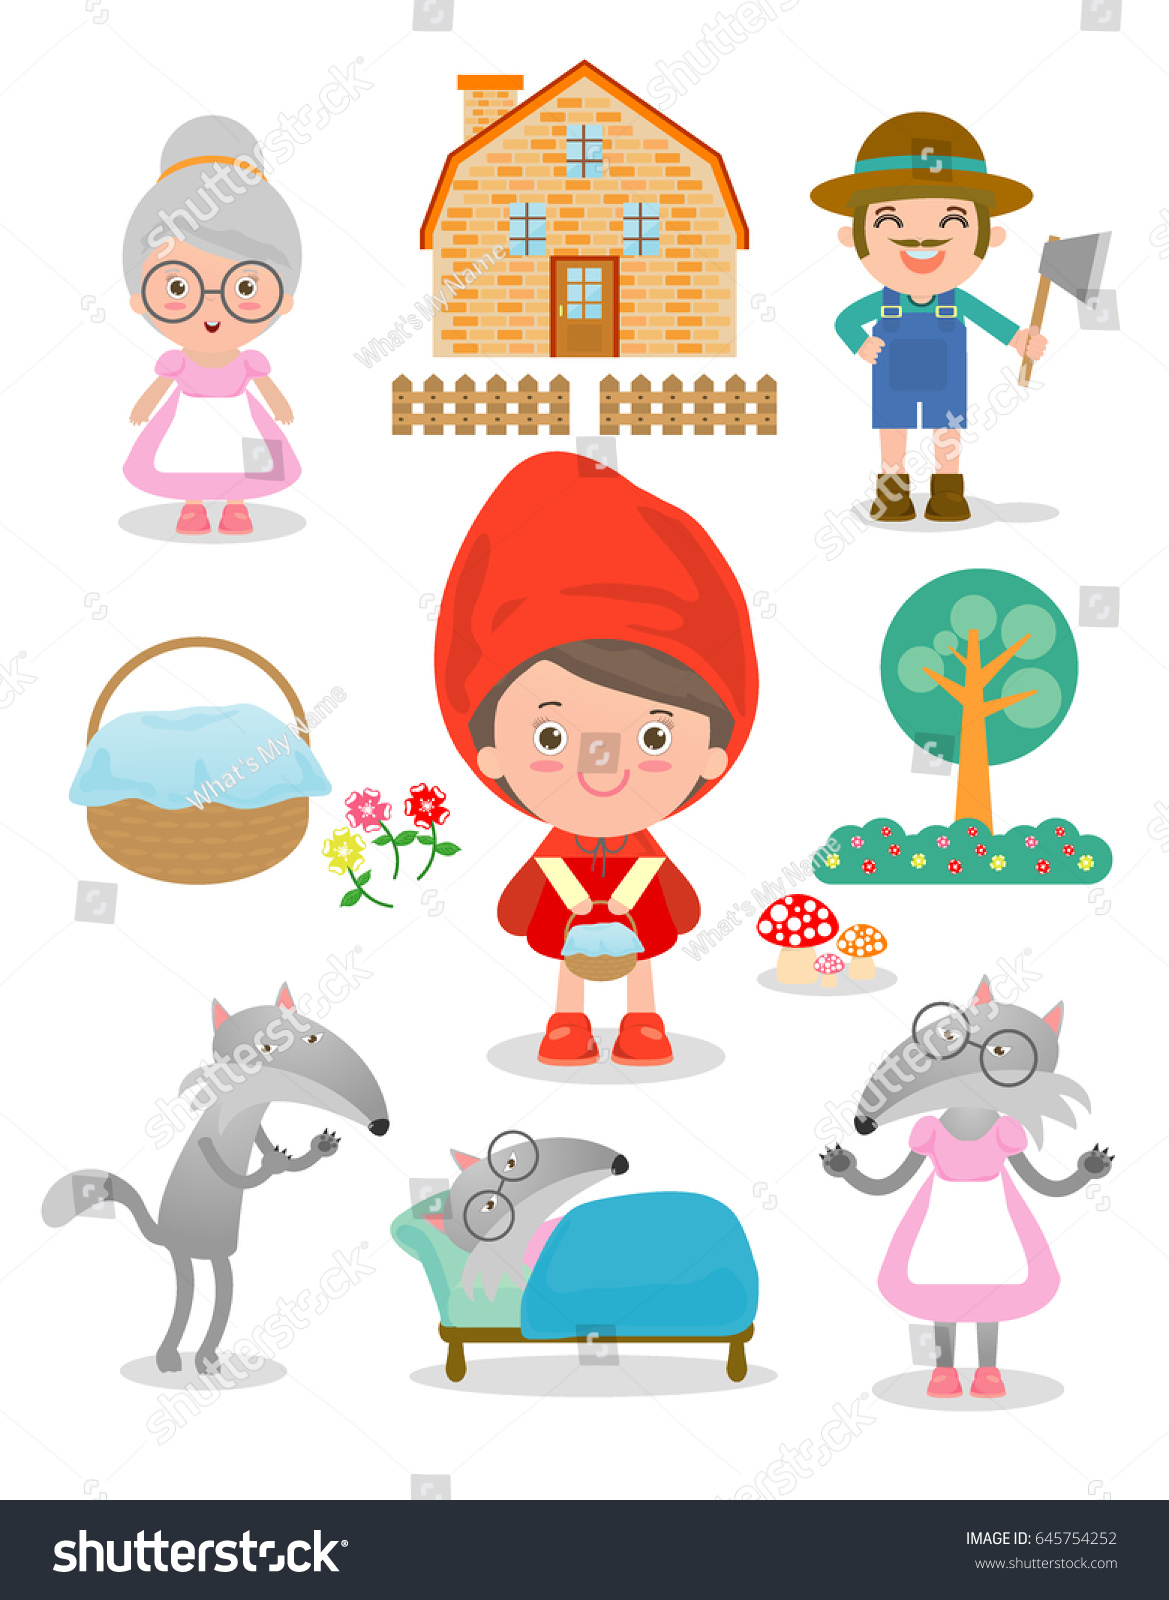 Set characters little red riding hood stock vector 645754252 set of characters from little red riding hood fairy tale on white background vector illustration buycottarizona